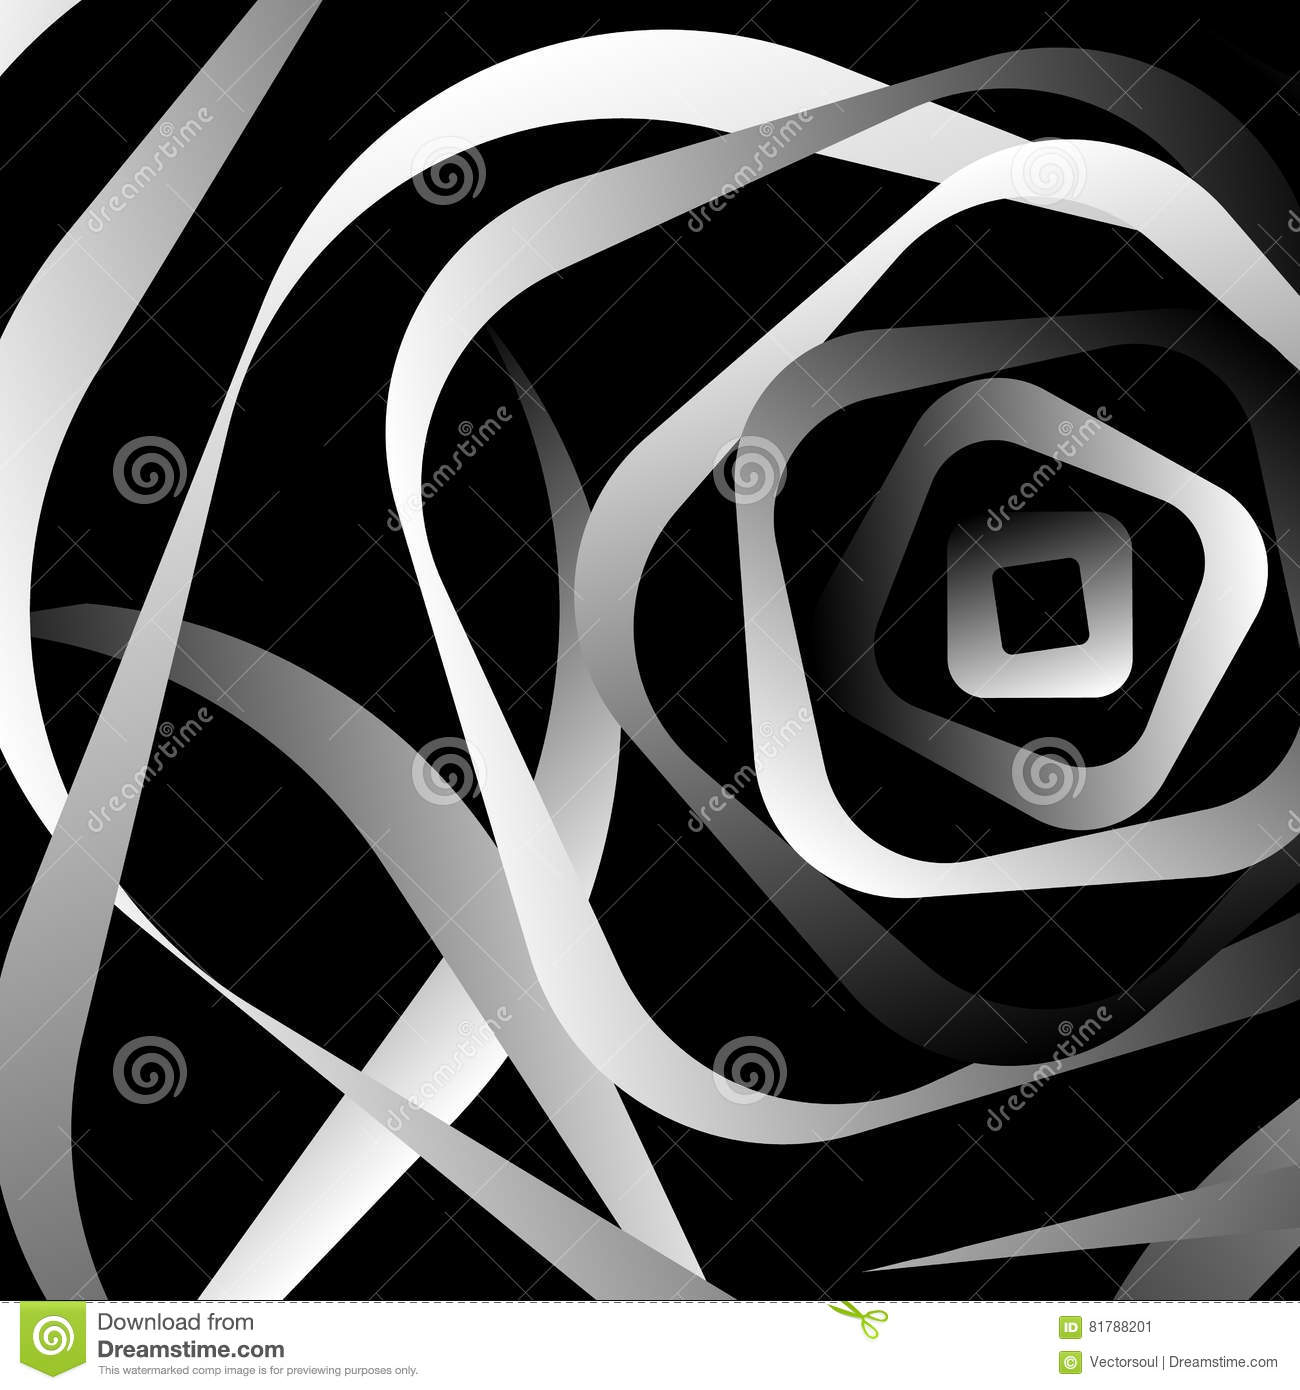 Rotating rounded corner squares. Abstract monochrome graphic.